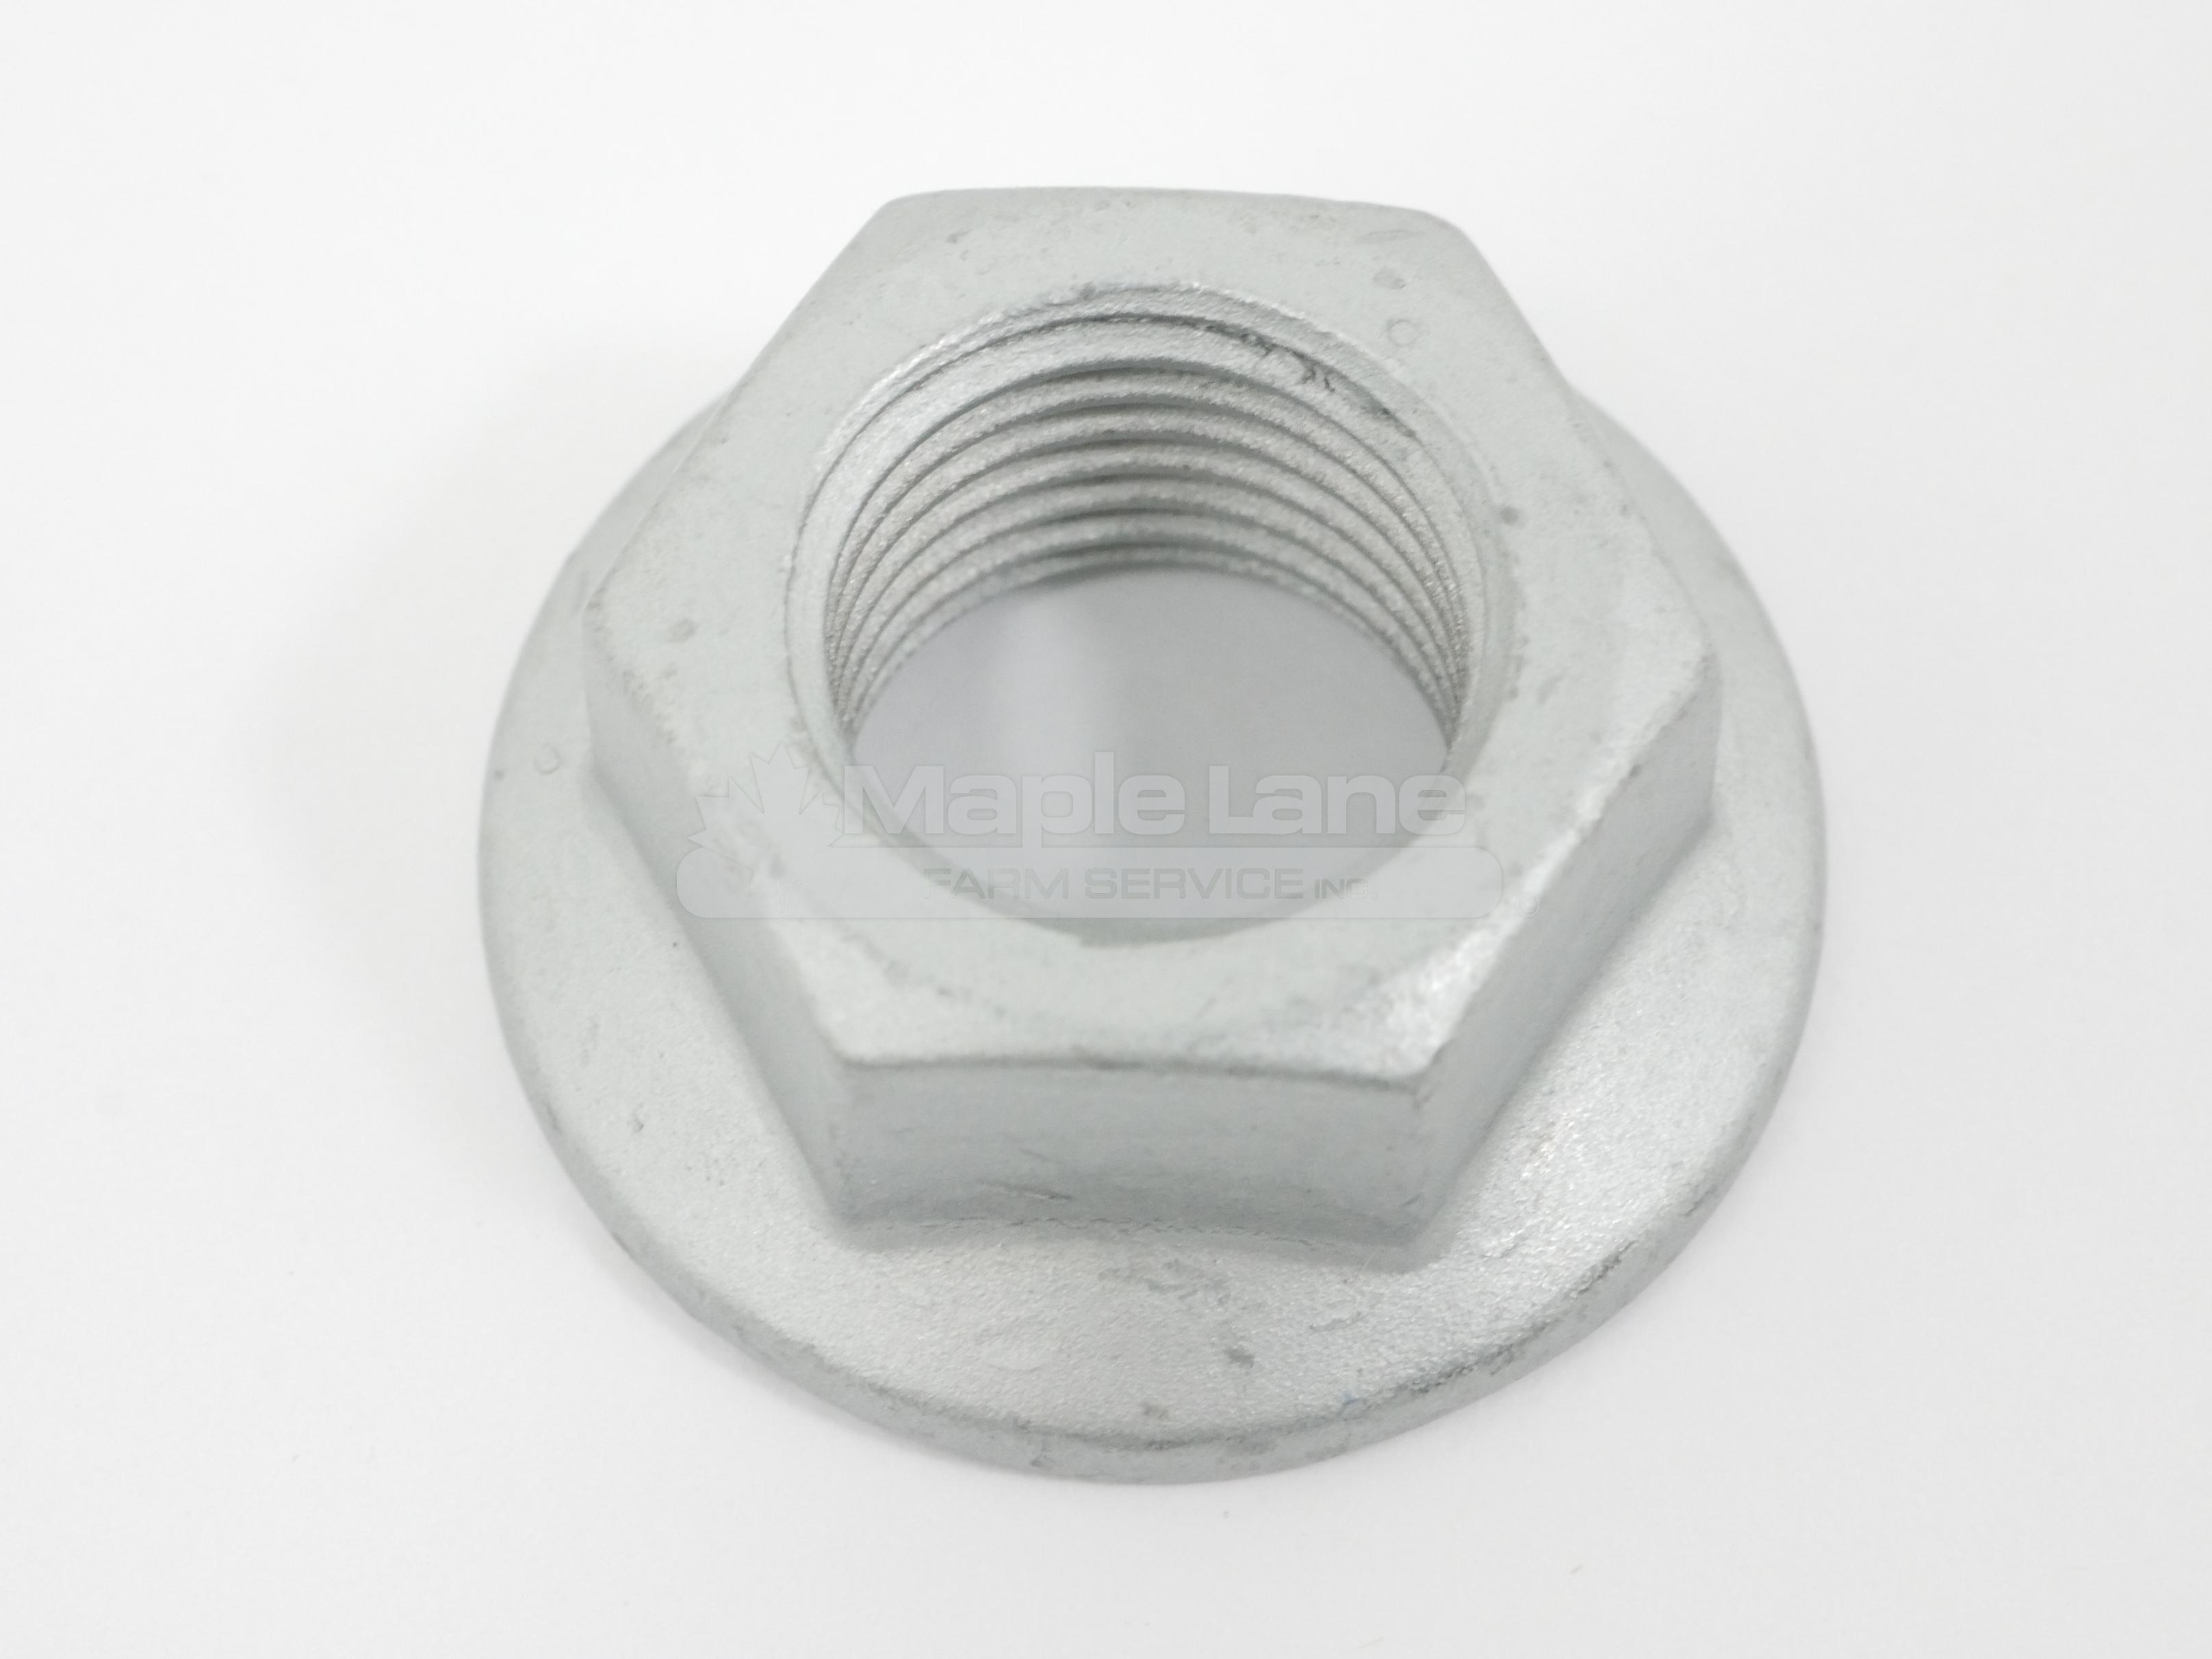 ACW2191970 Hex Lock Nut M12-1.25